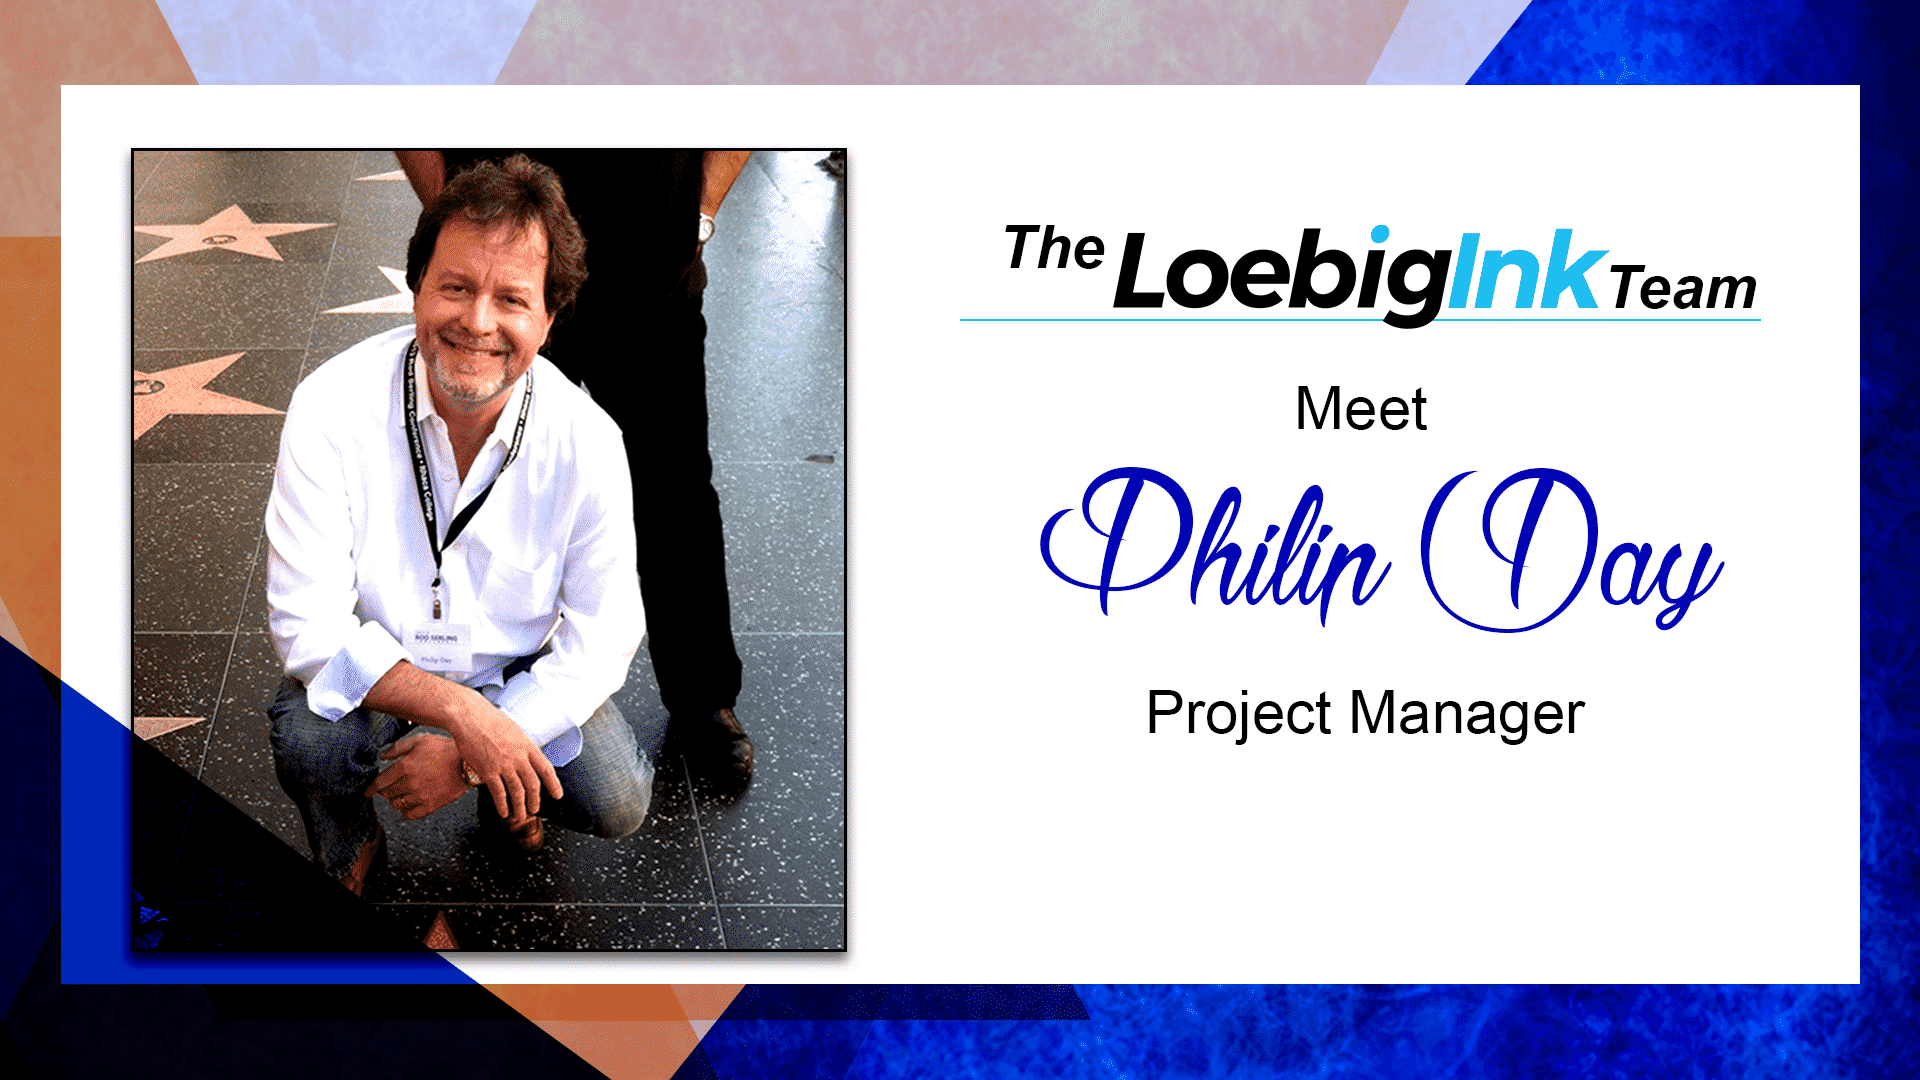 Loebig Ink Project Manager Philip Day